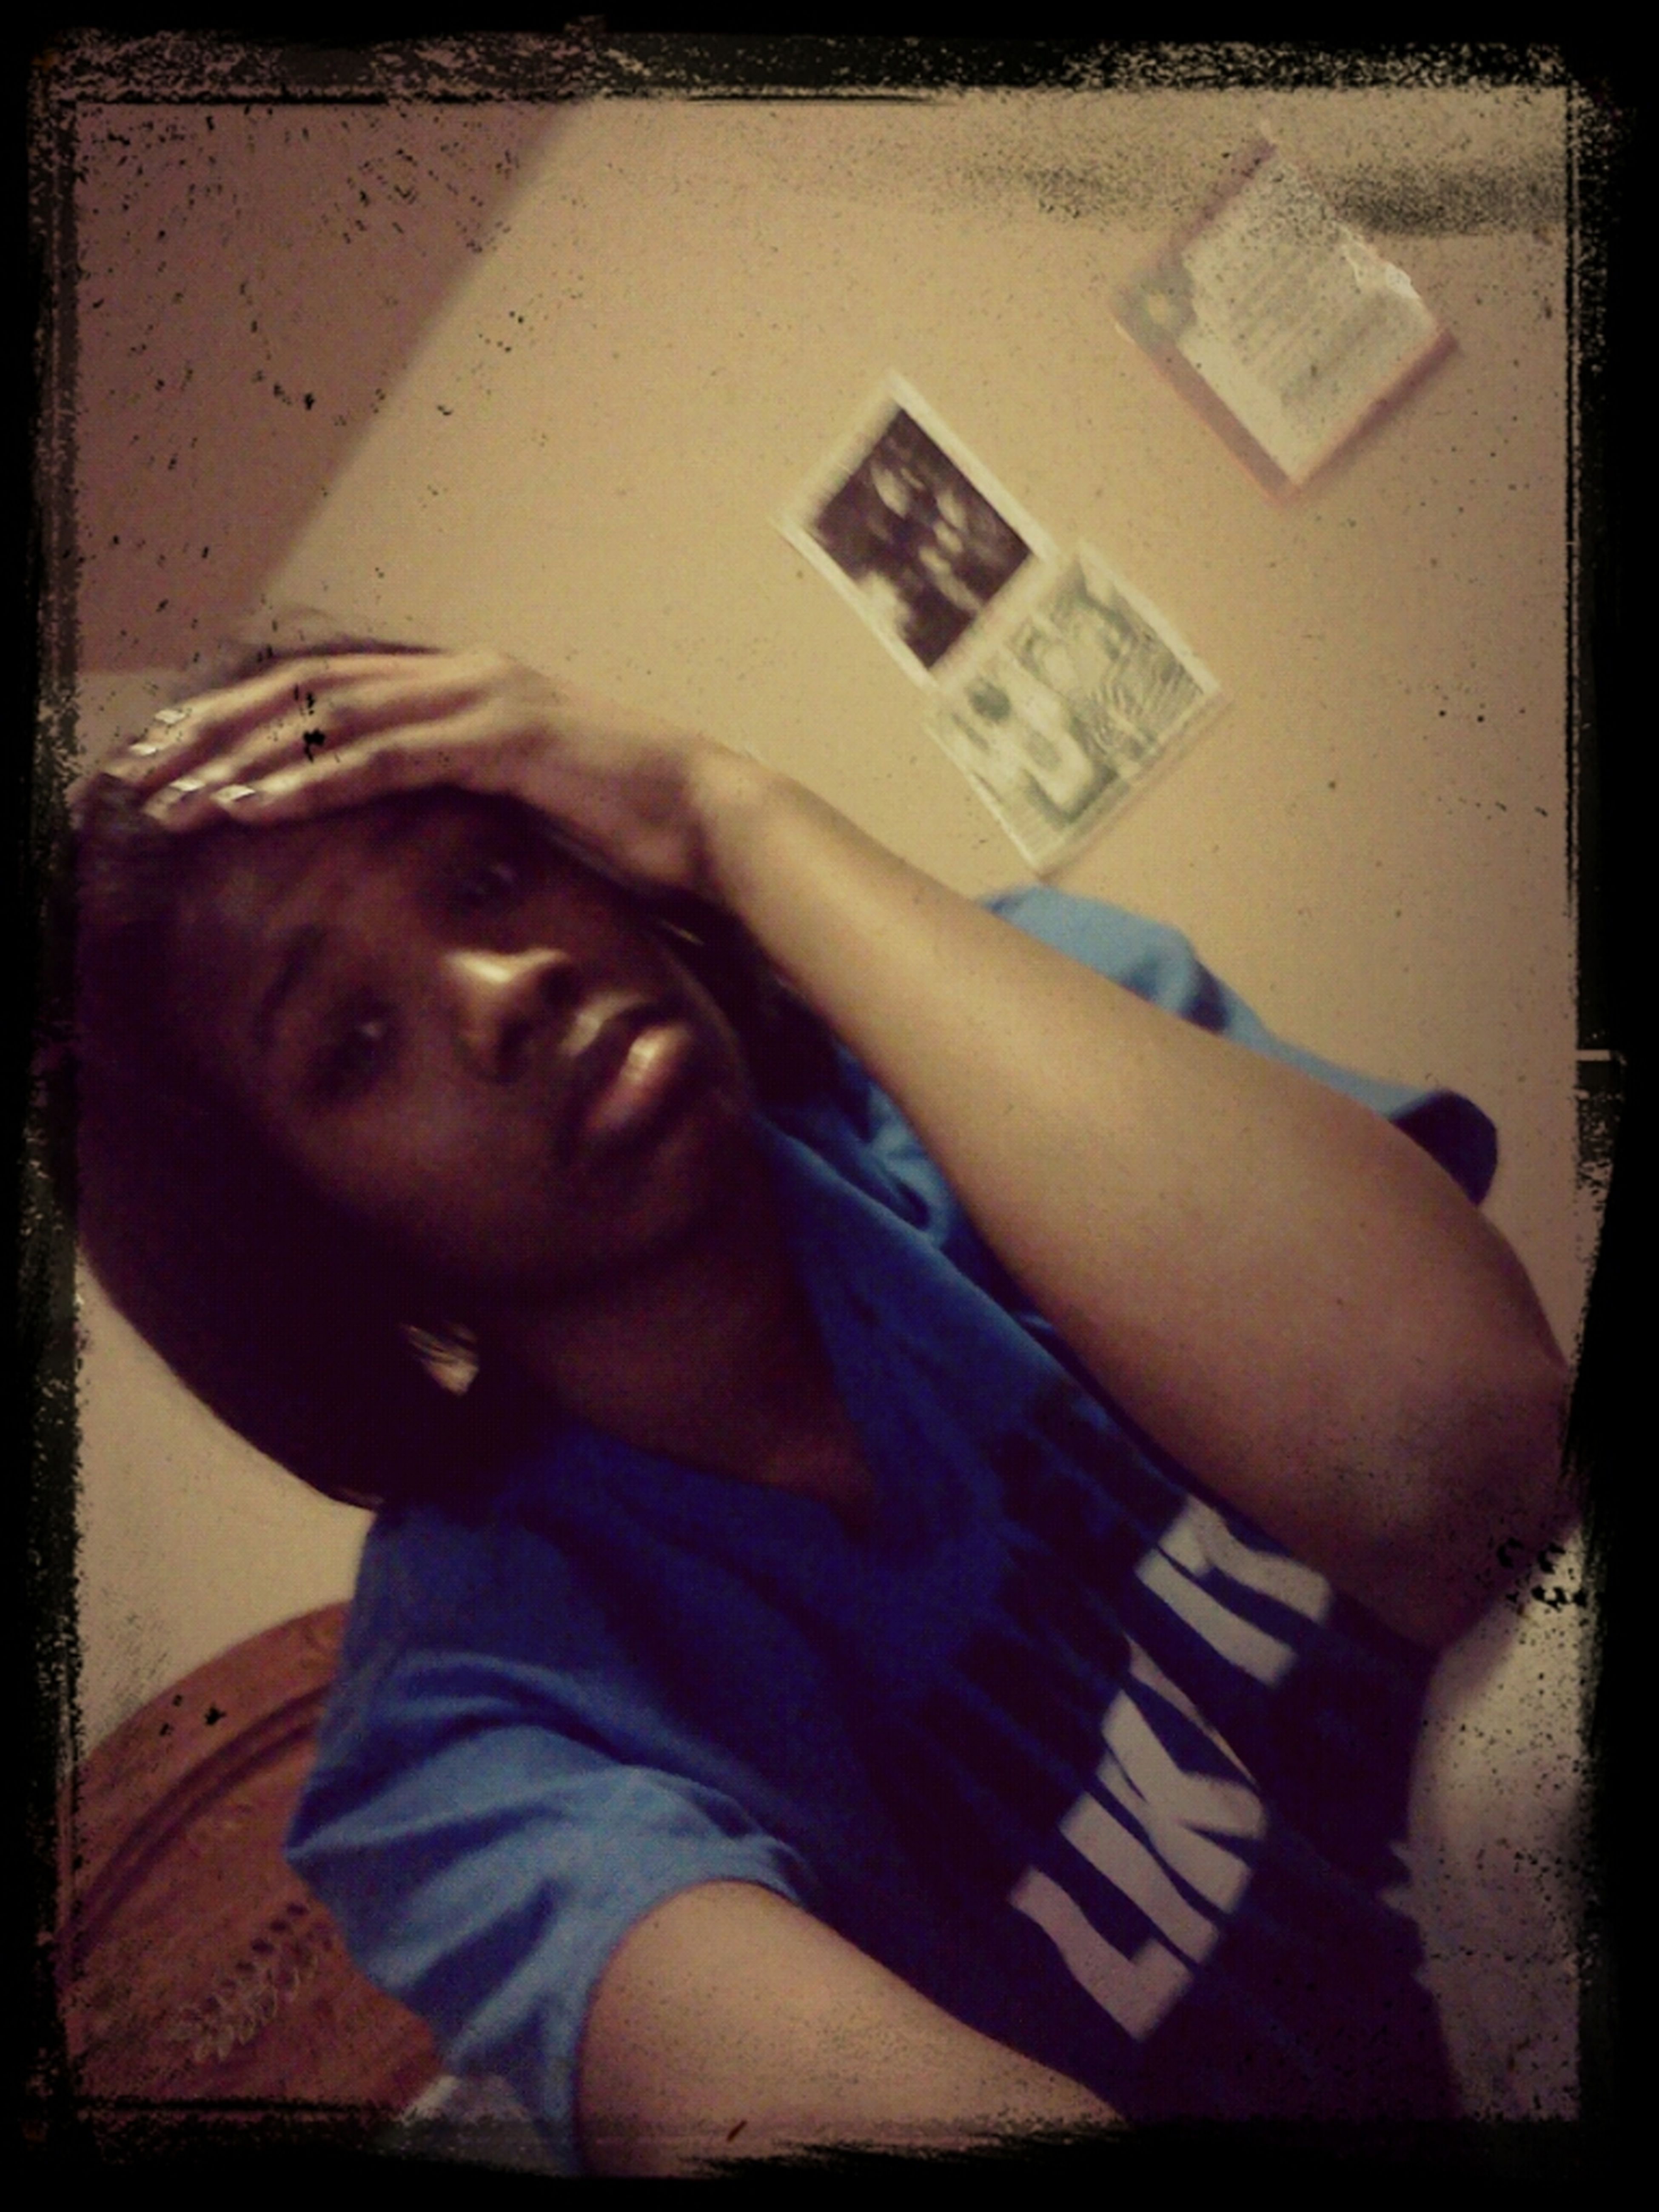 Tired :/